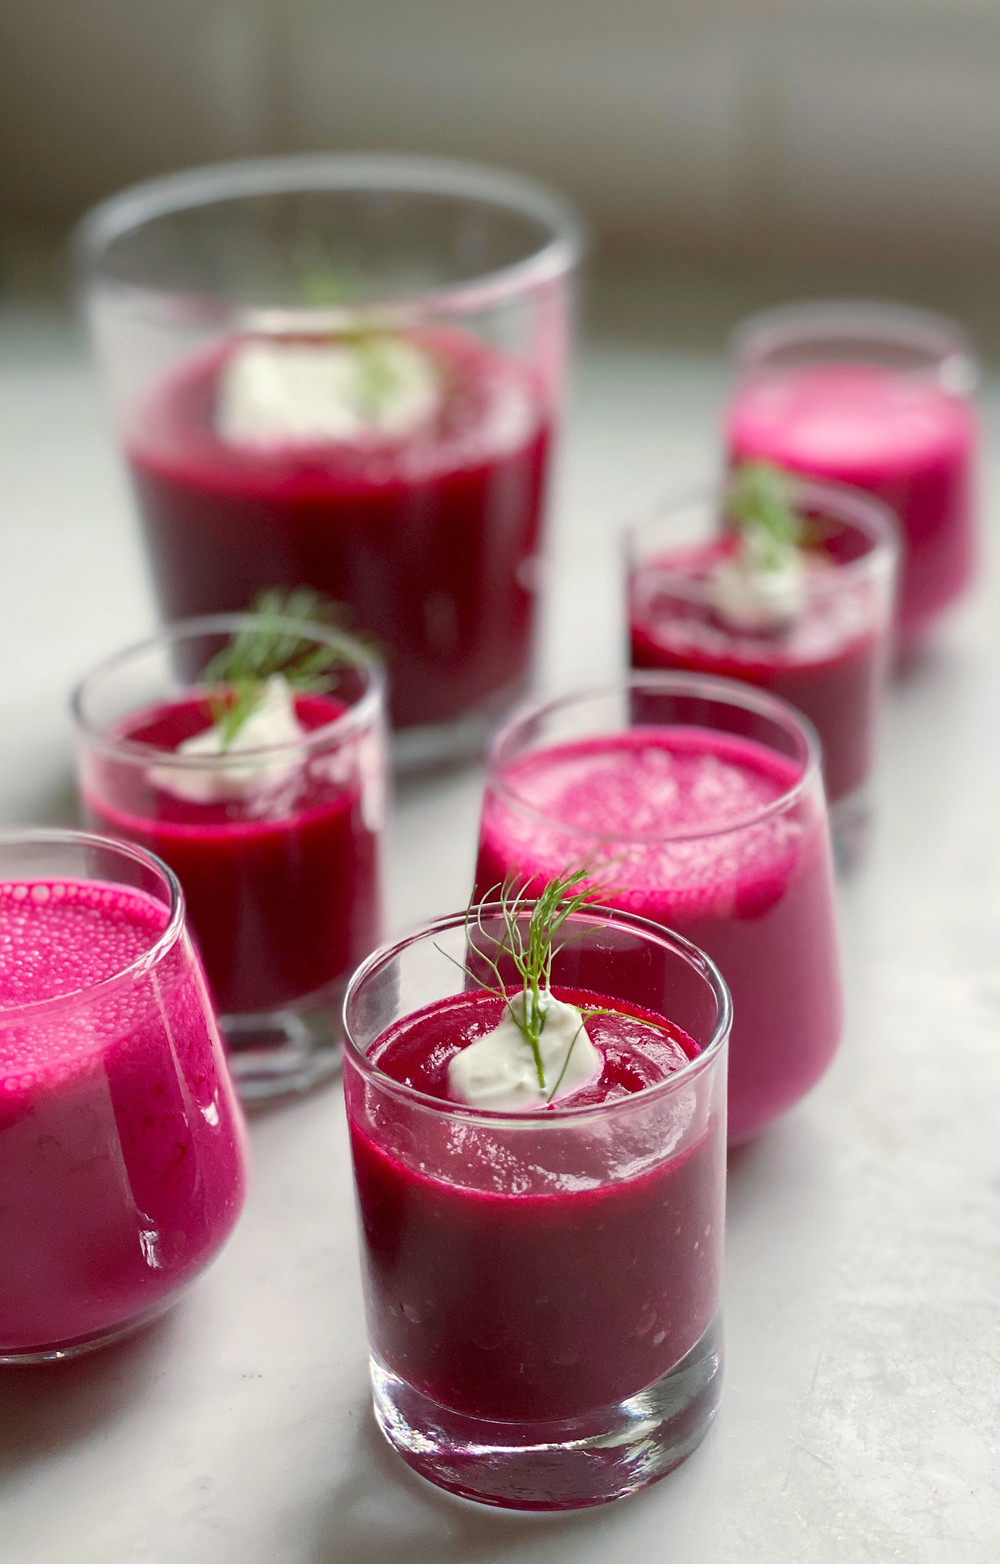 Quick Chilled Borscht